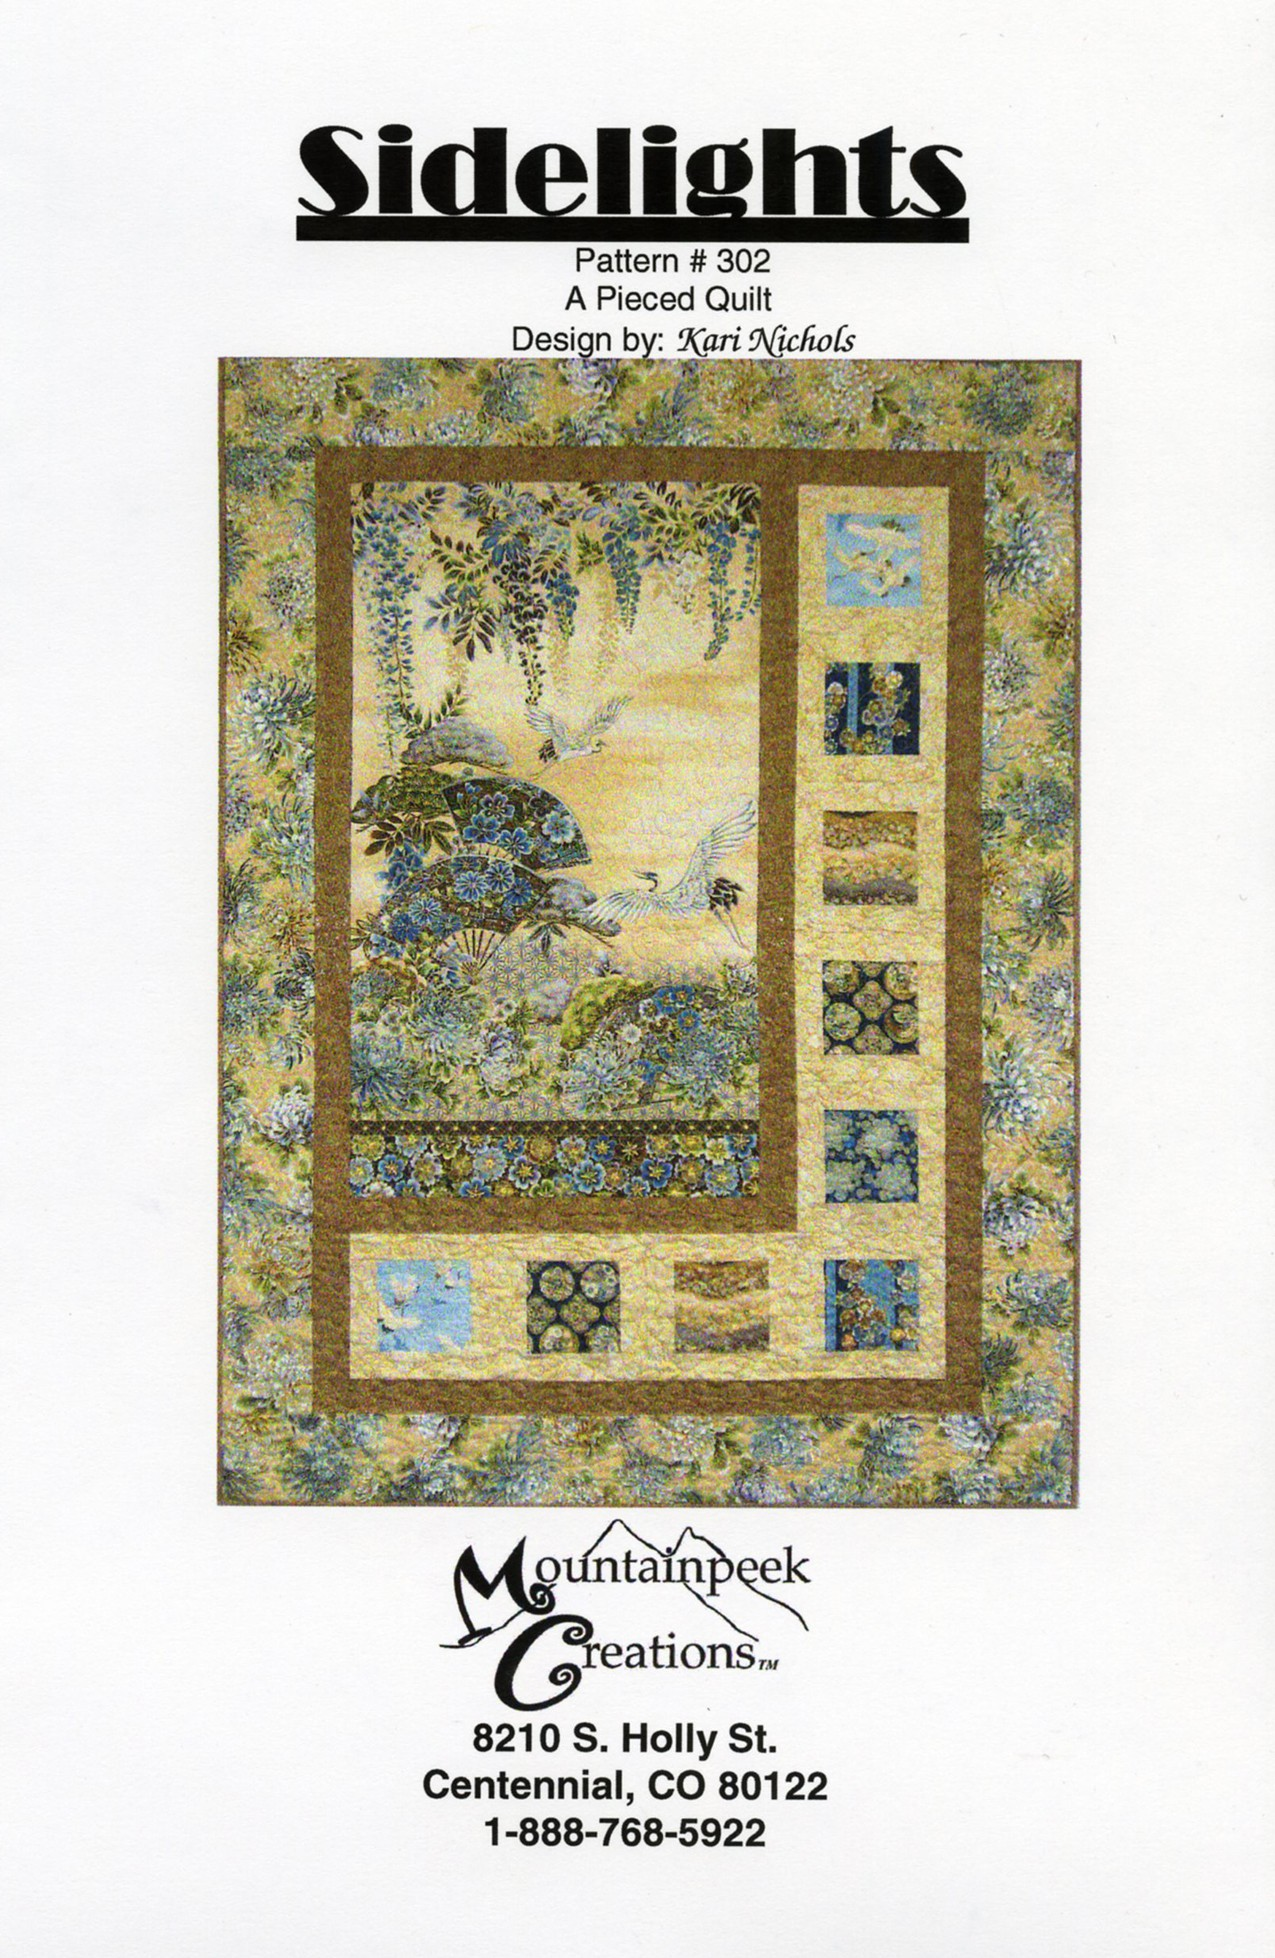 From MountainPeek Creations NEW TREE OF LIFE SIDELIGHTS PANEL QUILT PATTERN